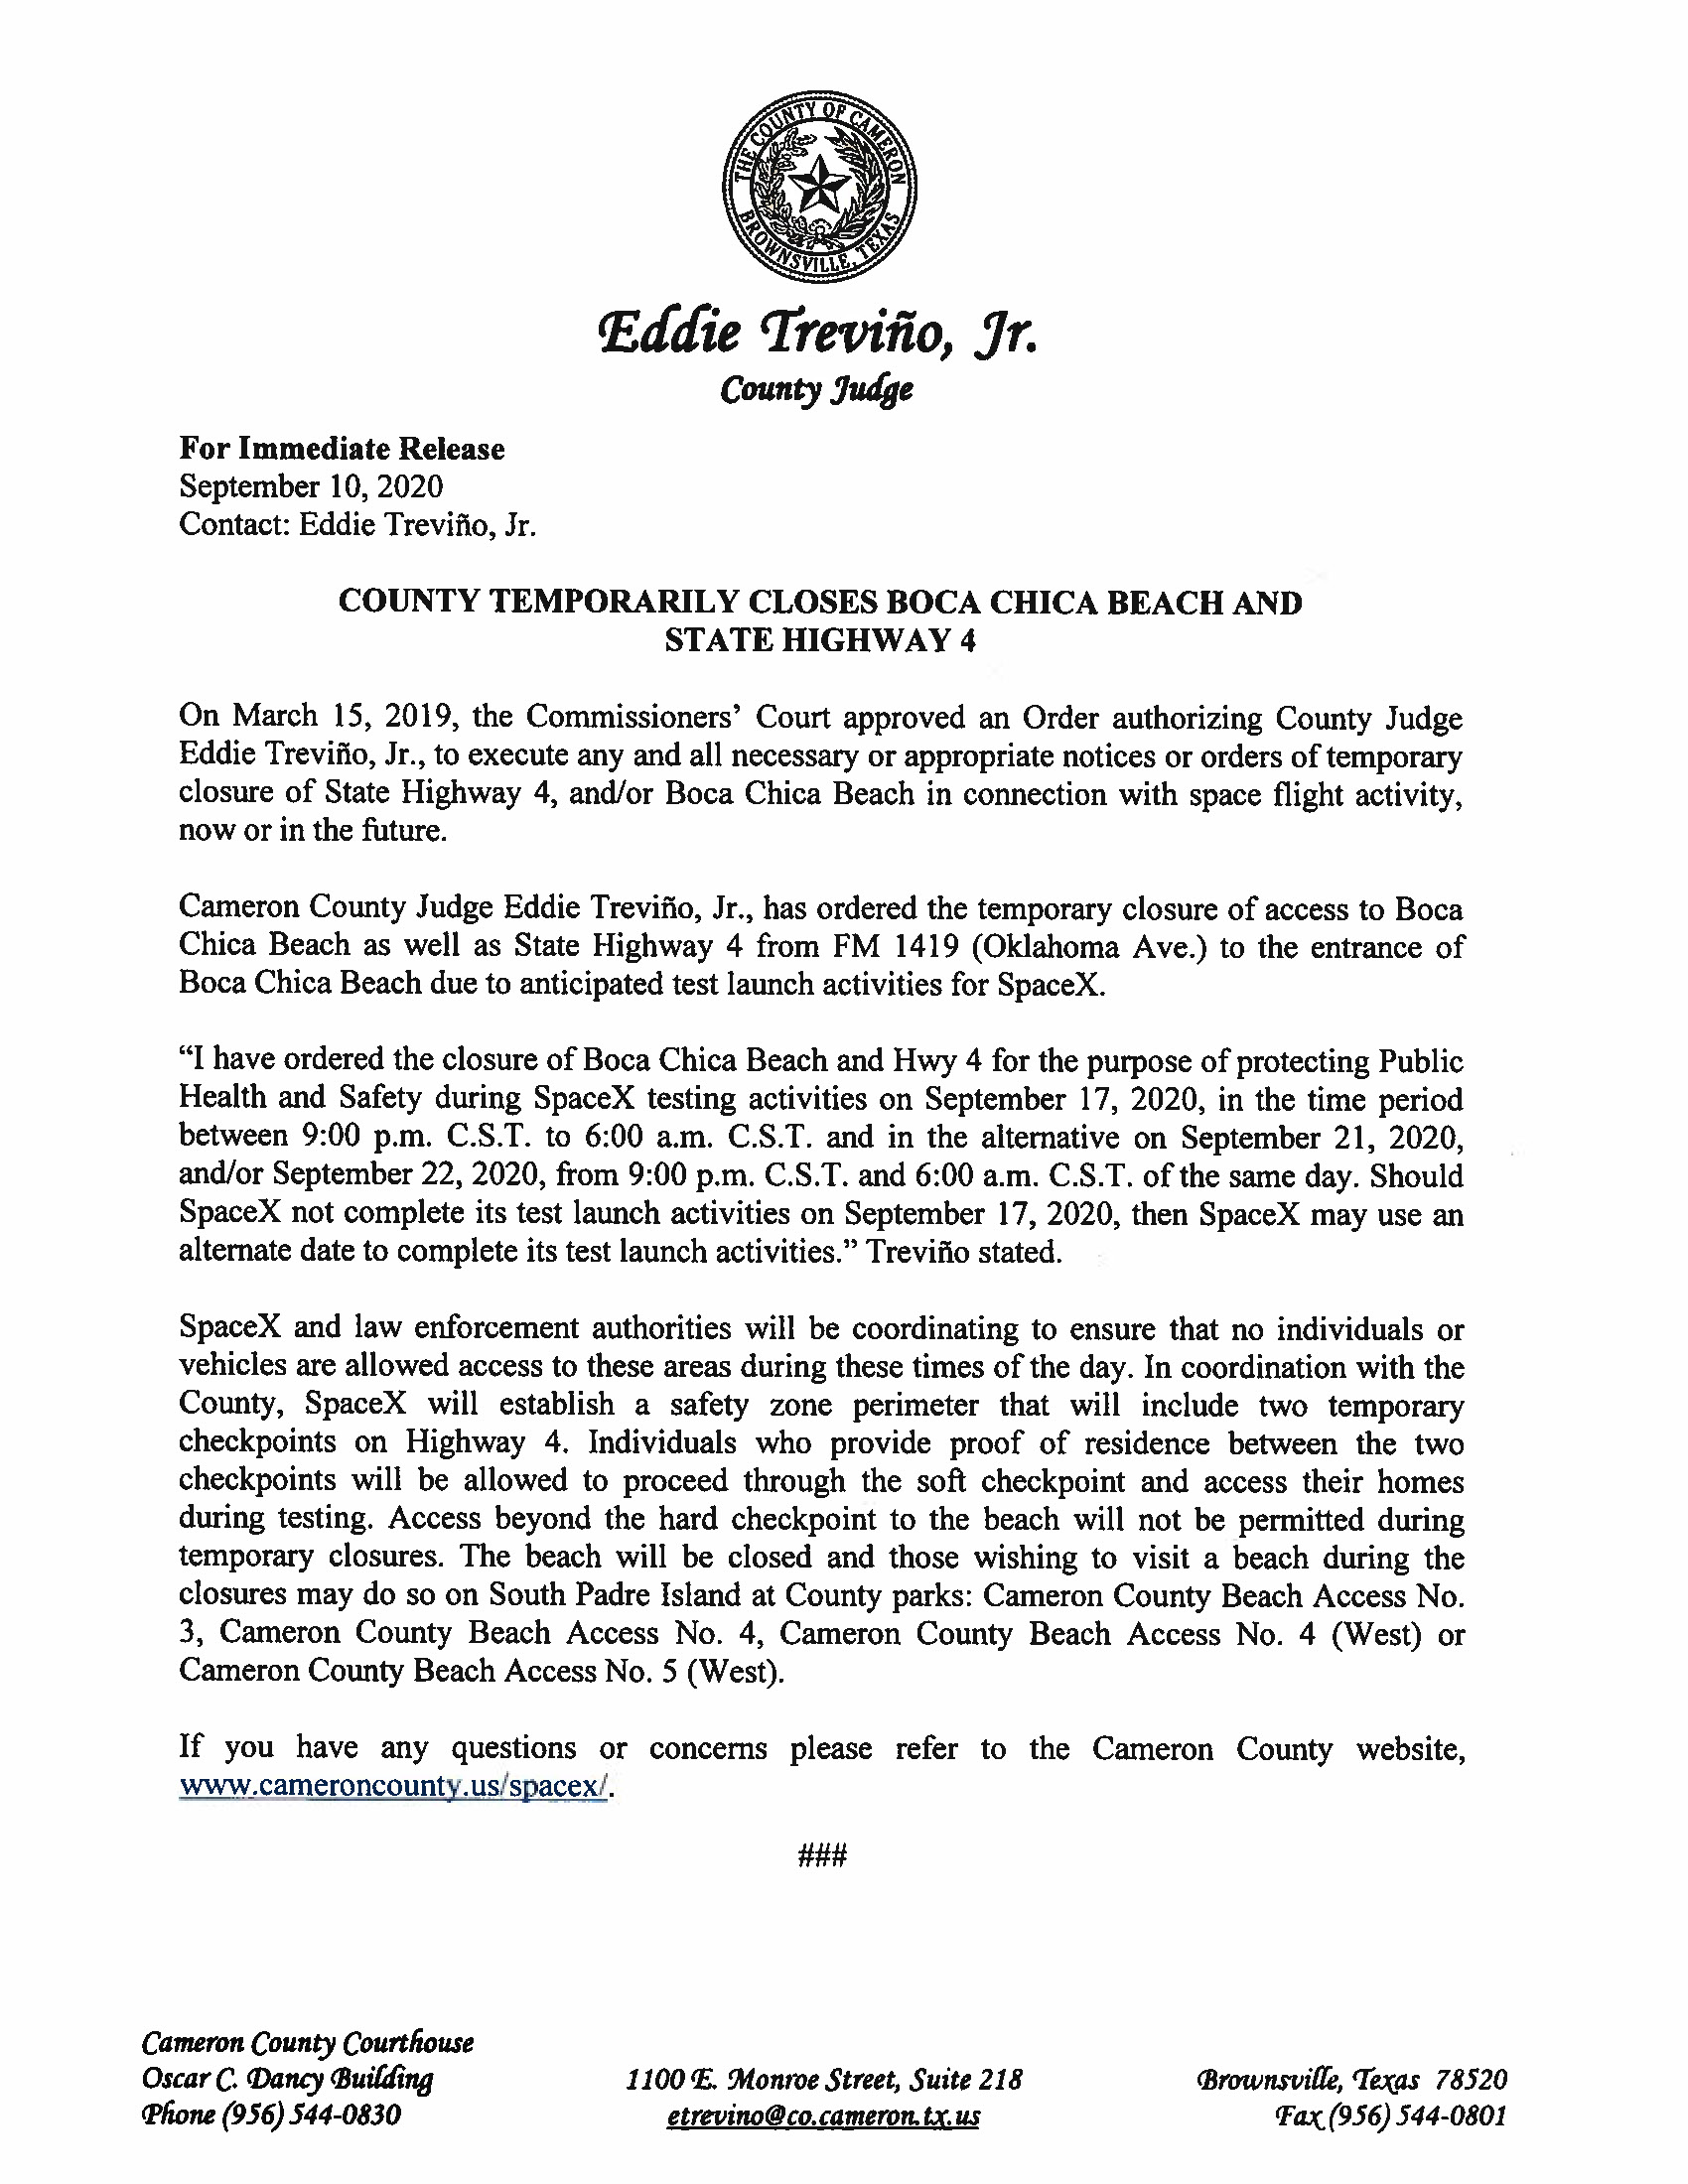 Press Release In English And Spanish.09.17.20 Page 1